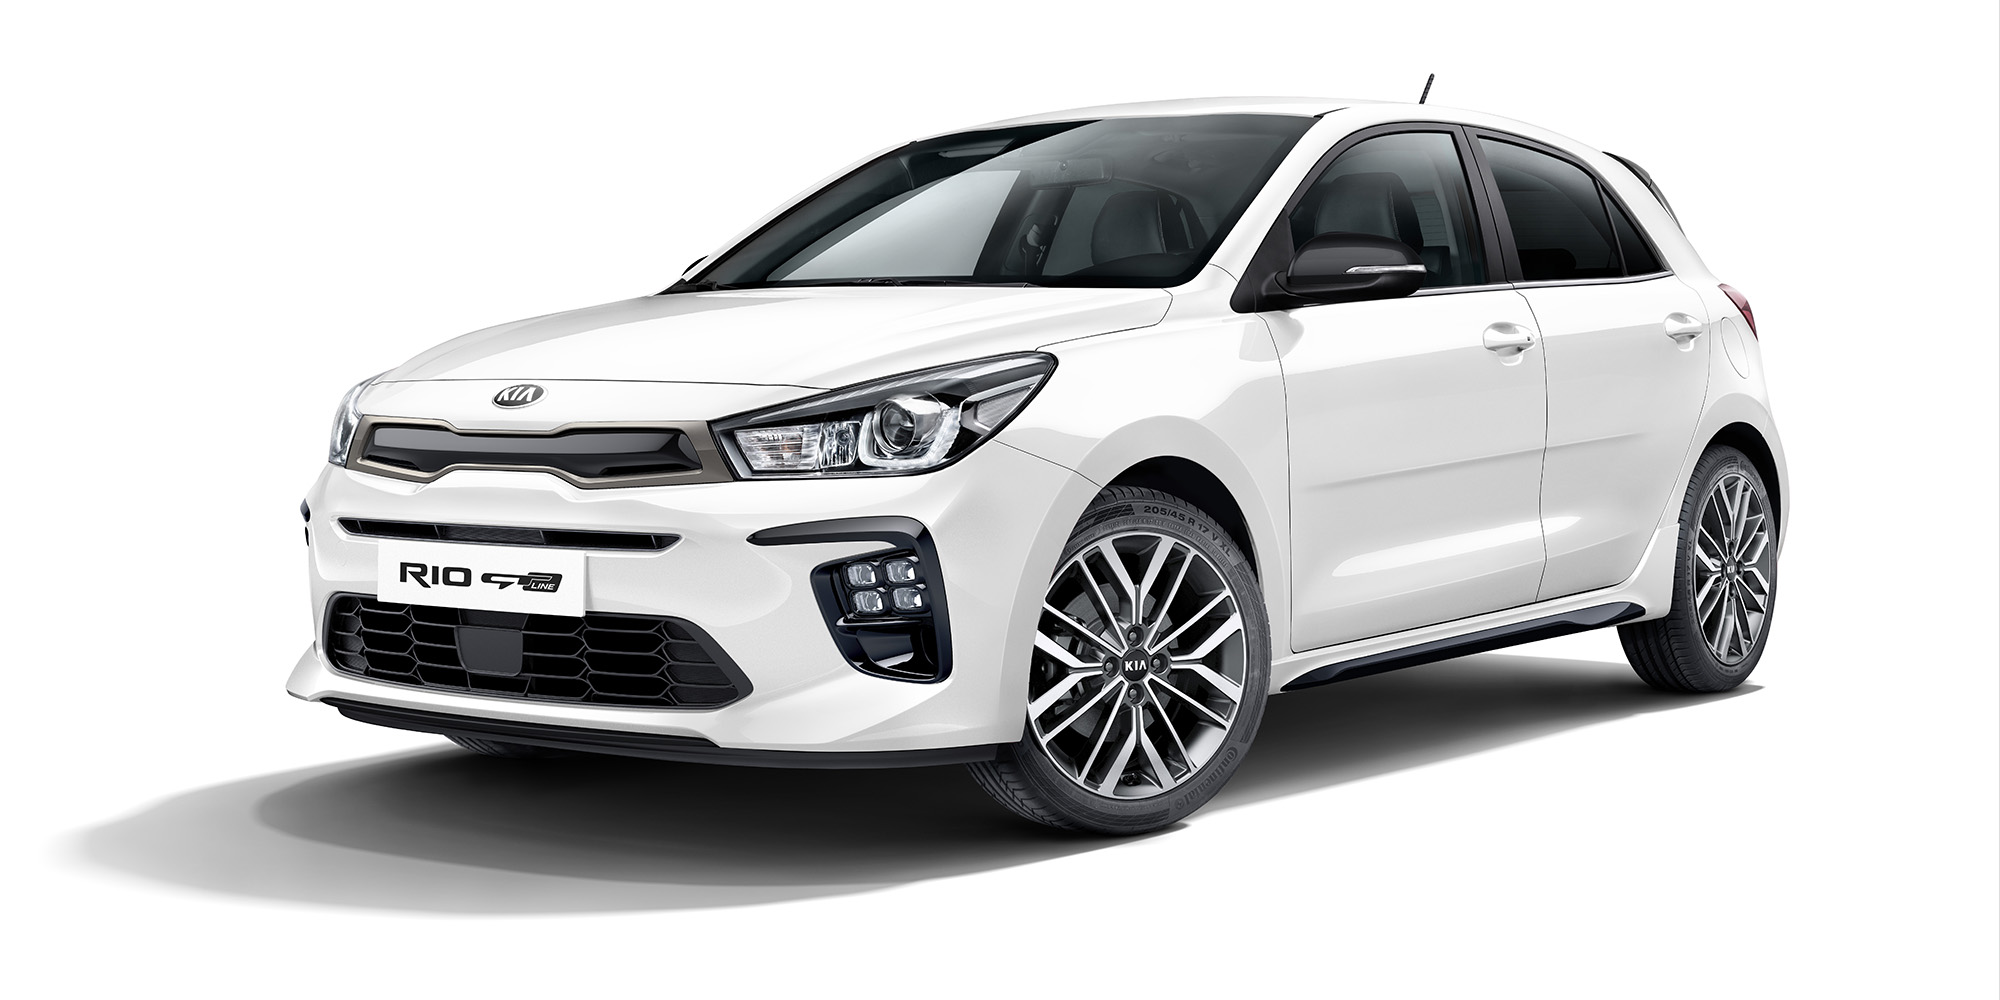 2018 kia rio gt line revealed but it 39 s not for oz photos. Black Bedroom Furniture Sets. Home Design Ideas